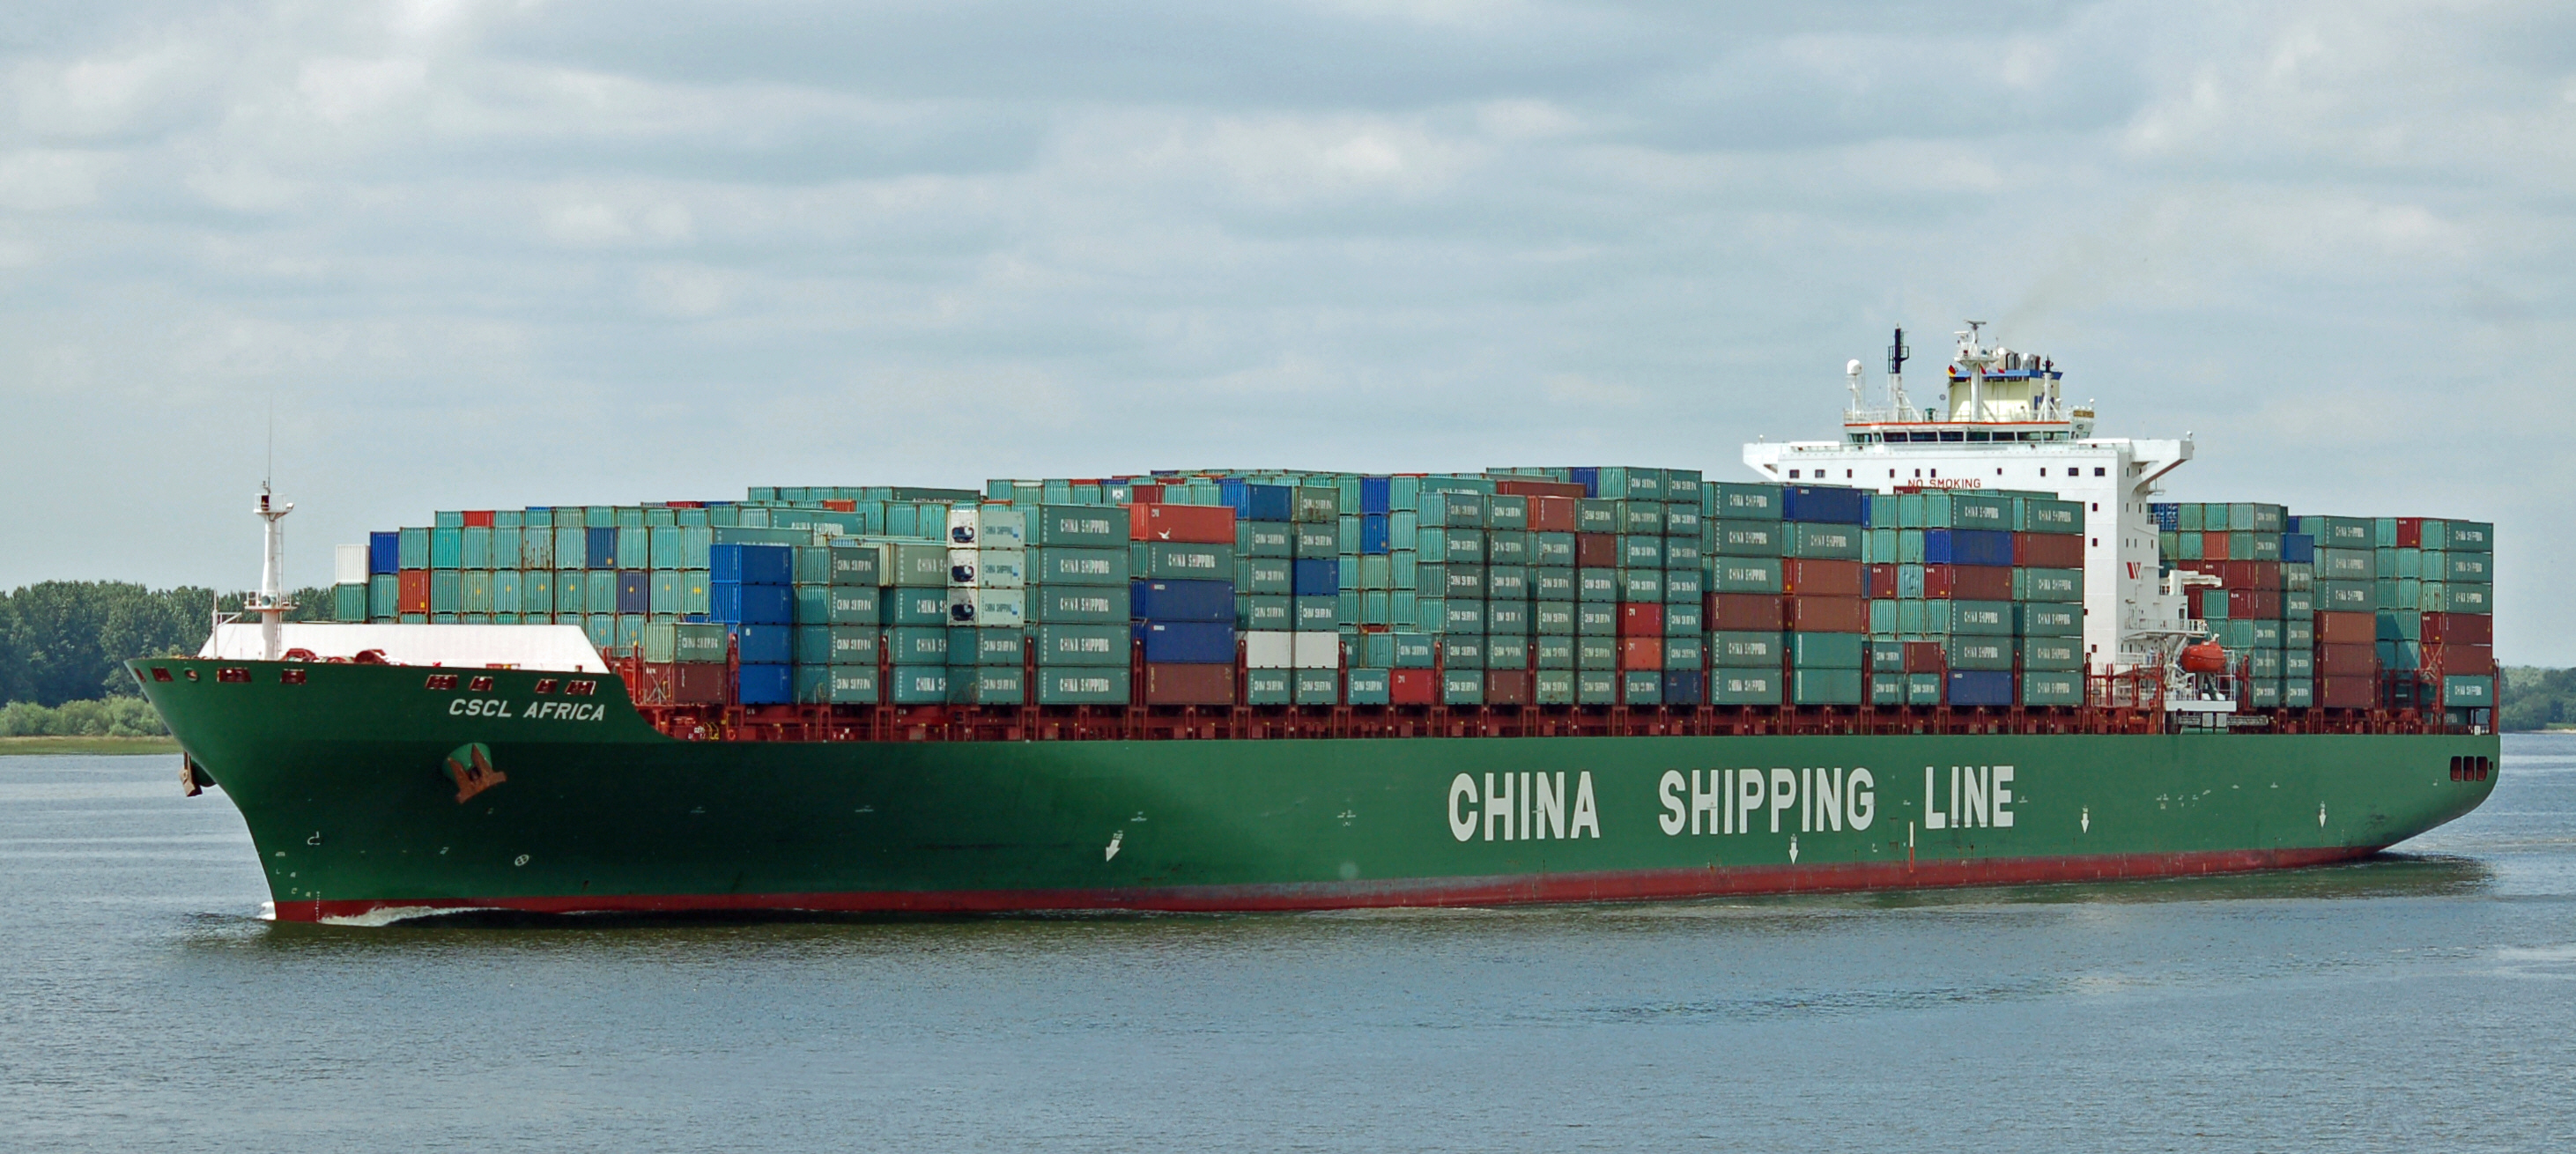 Is China Shipping Contaminated Food Under The Organic Guise